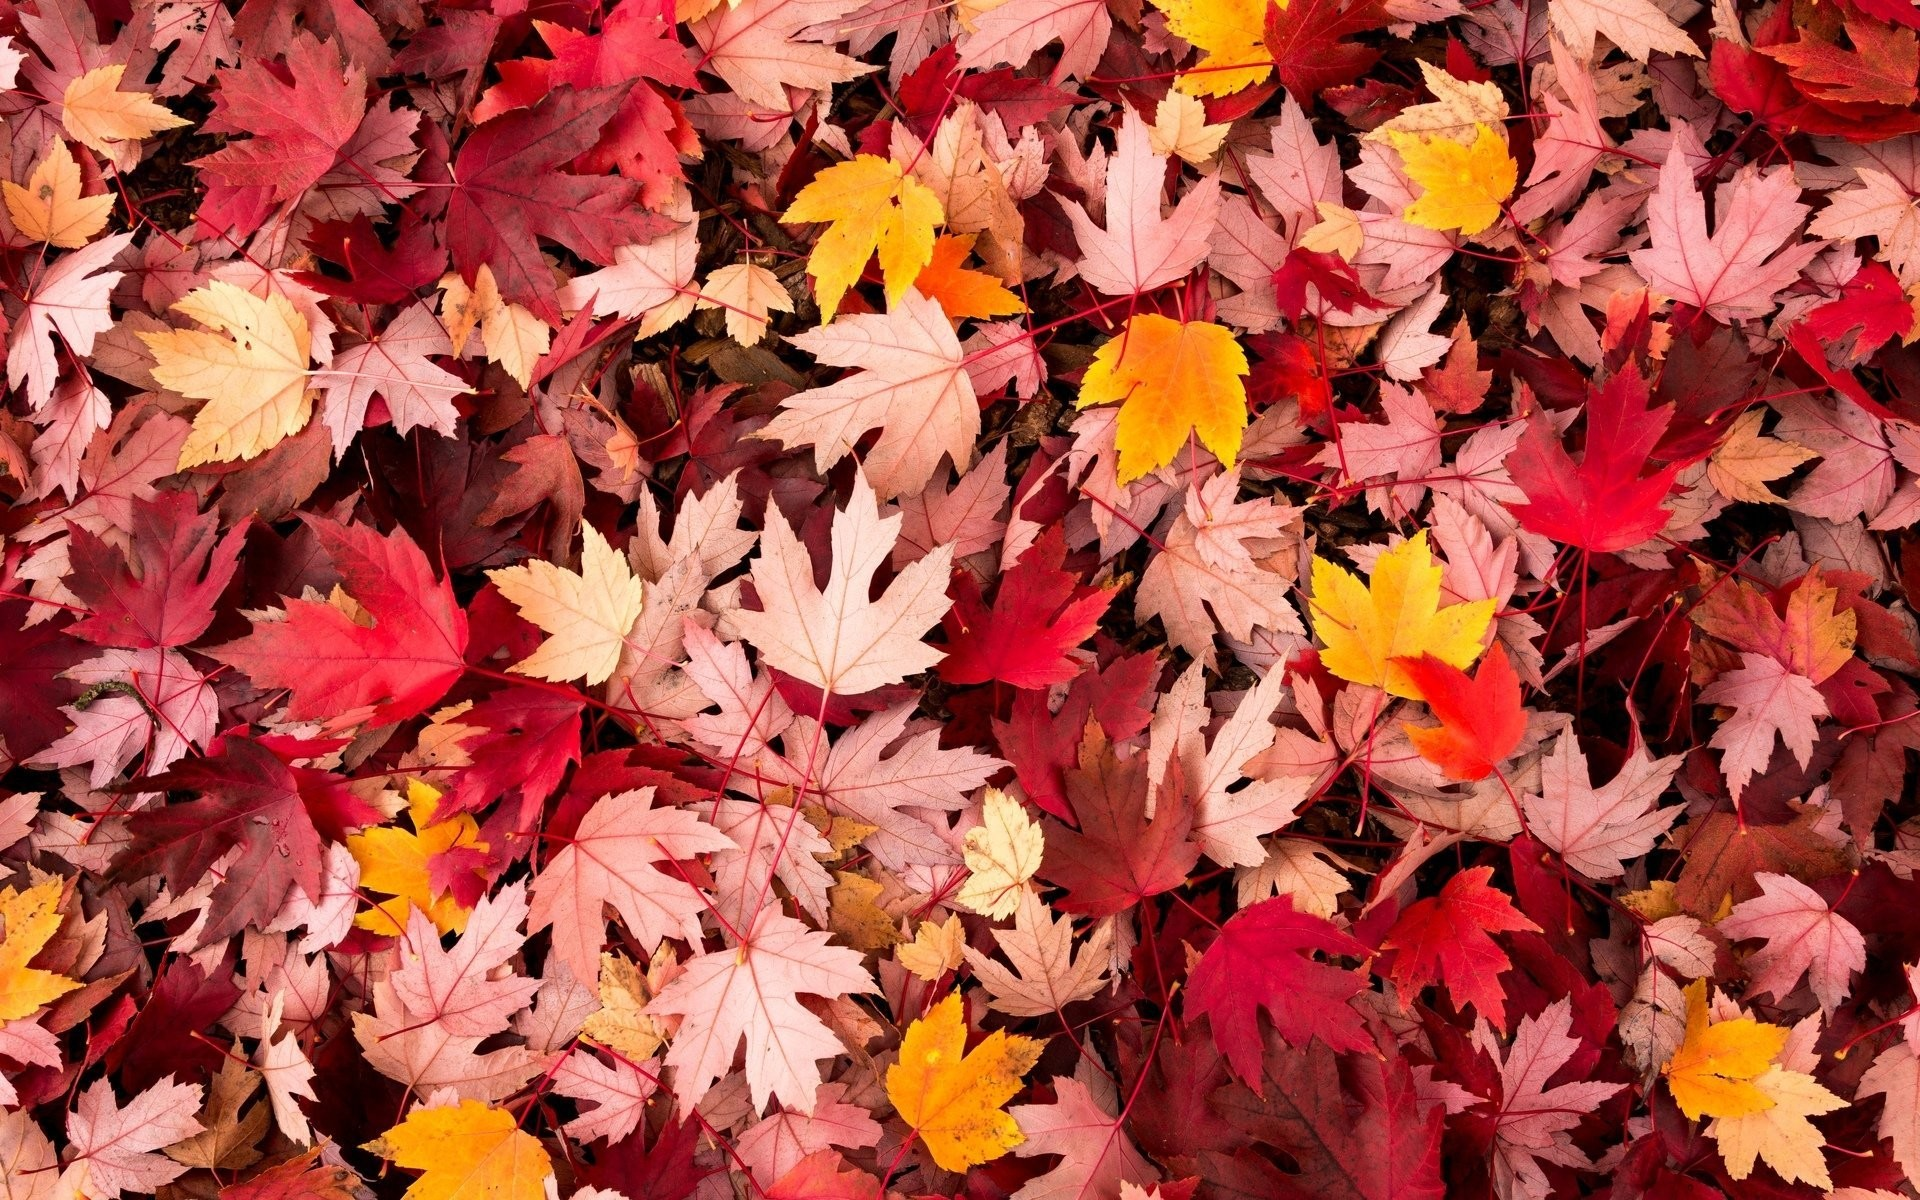 Falling Leaves Live Wallpaper Apps Android Autumn Screen Wallpaper 64 Images